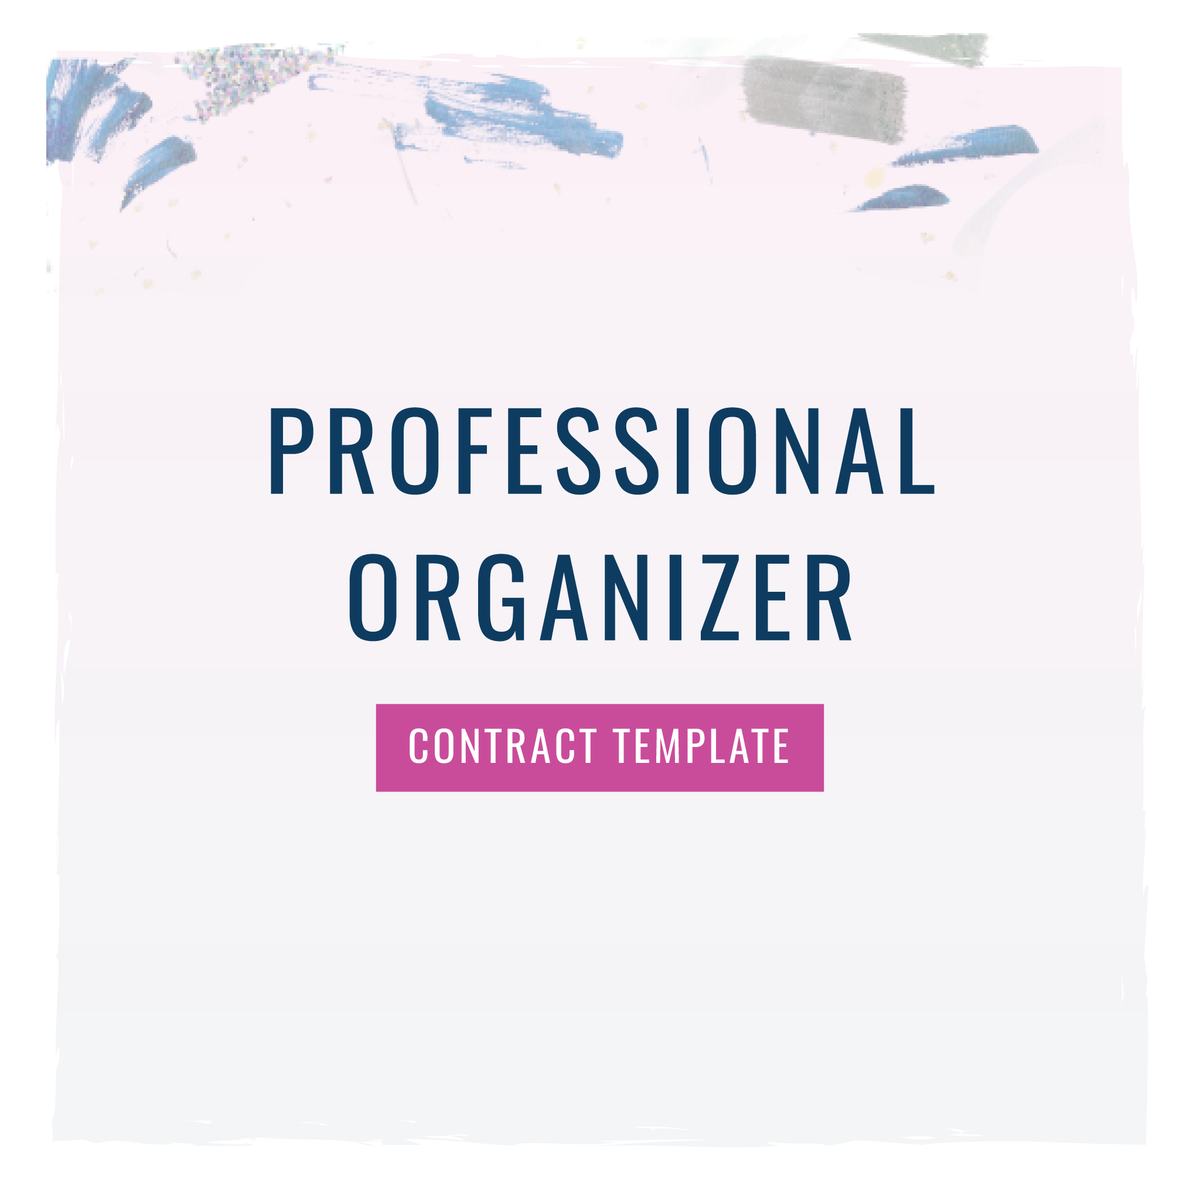 Professional Organizer Contract Template